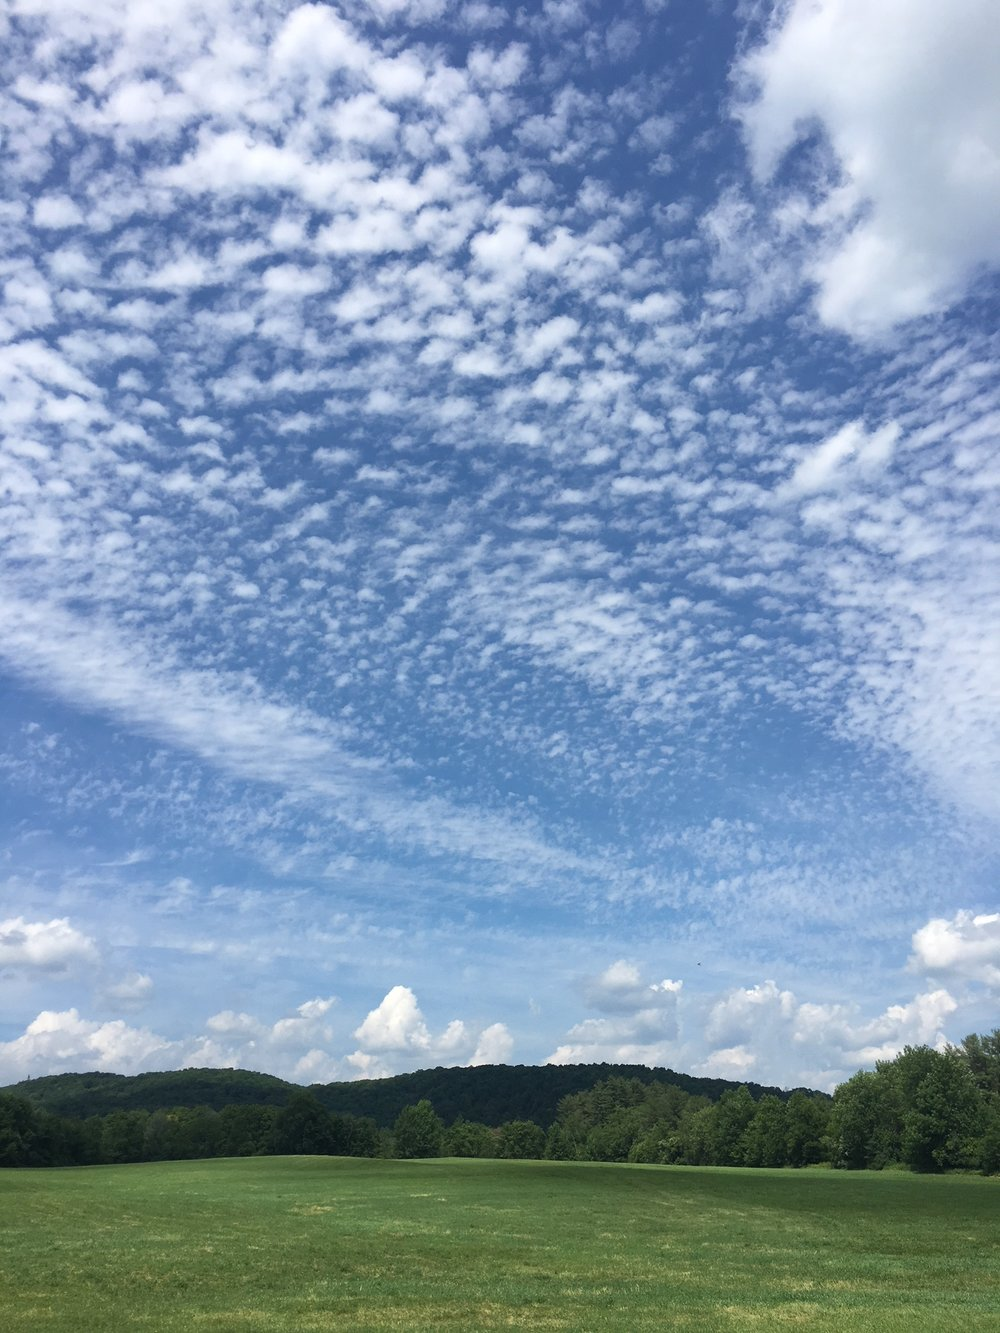 A Vermont cloud photo by Brennen to brighten your day